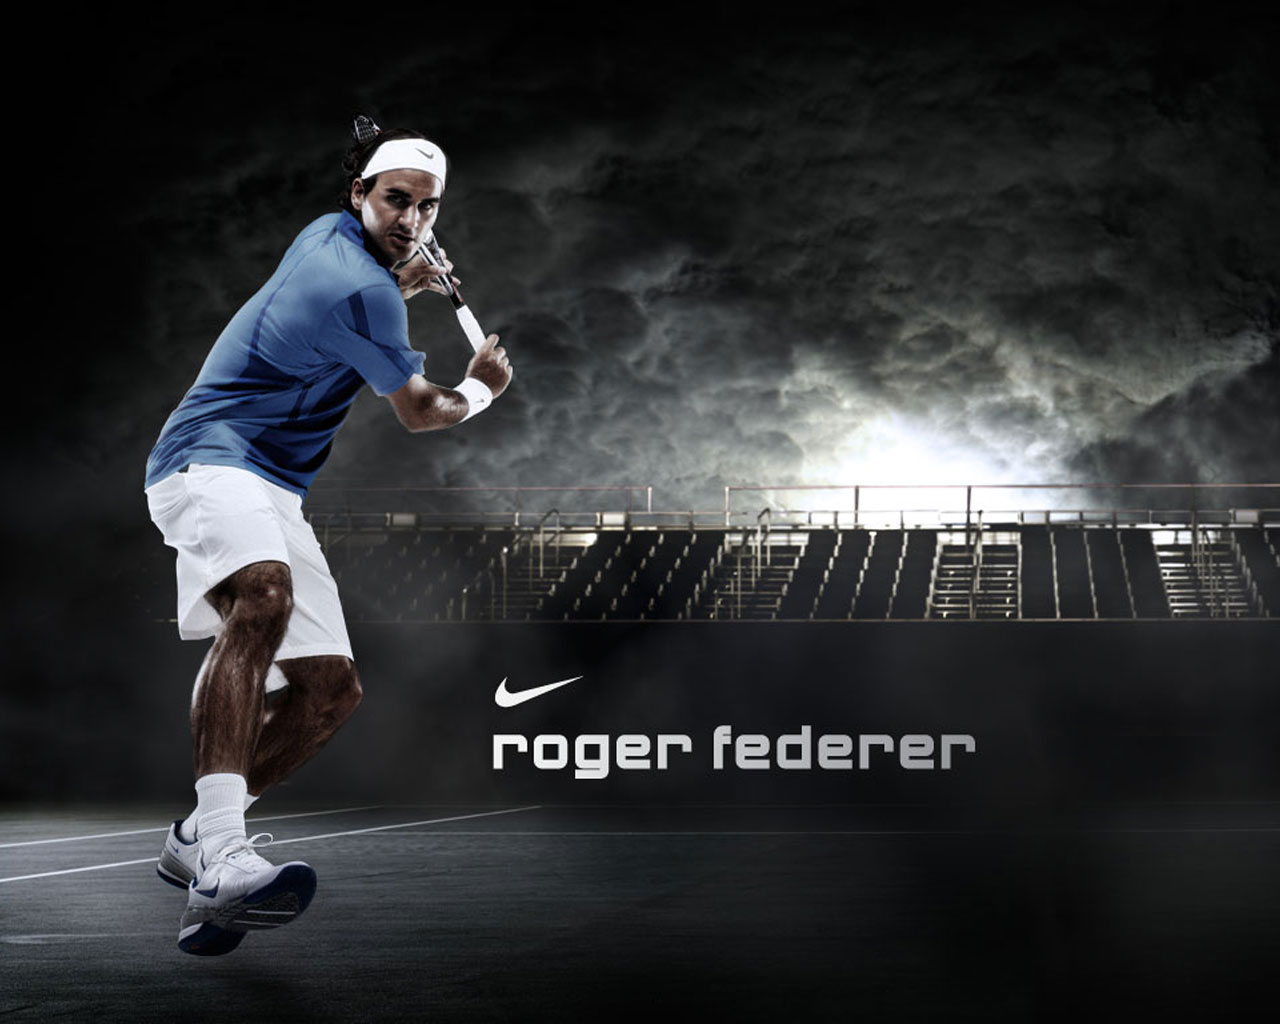 Sports Wallpapers Hd Tennis Wallpapers Hd